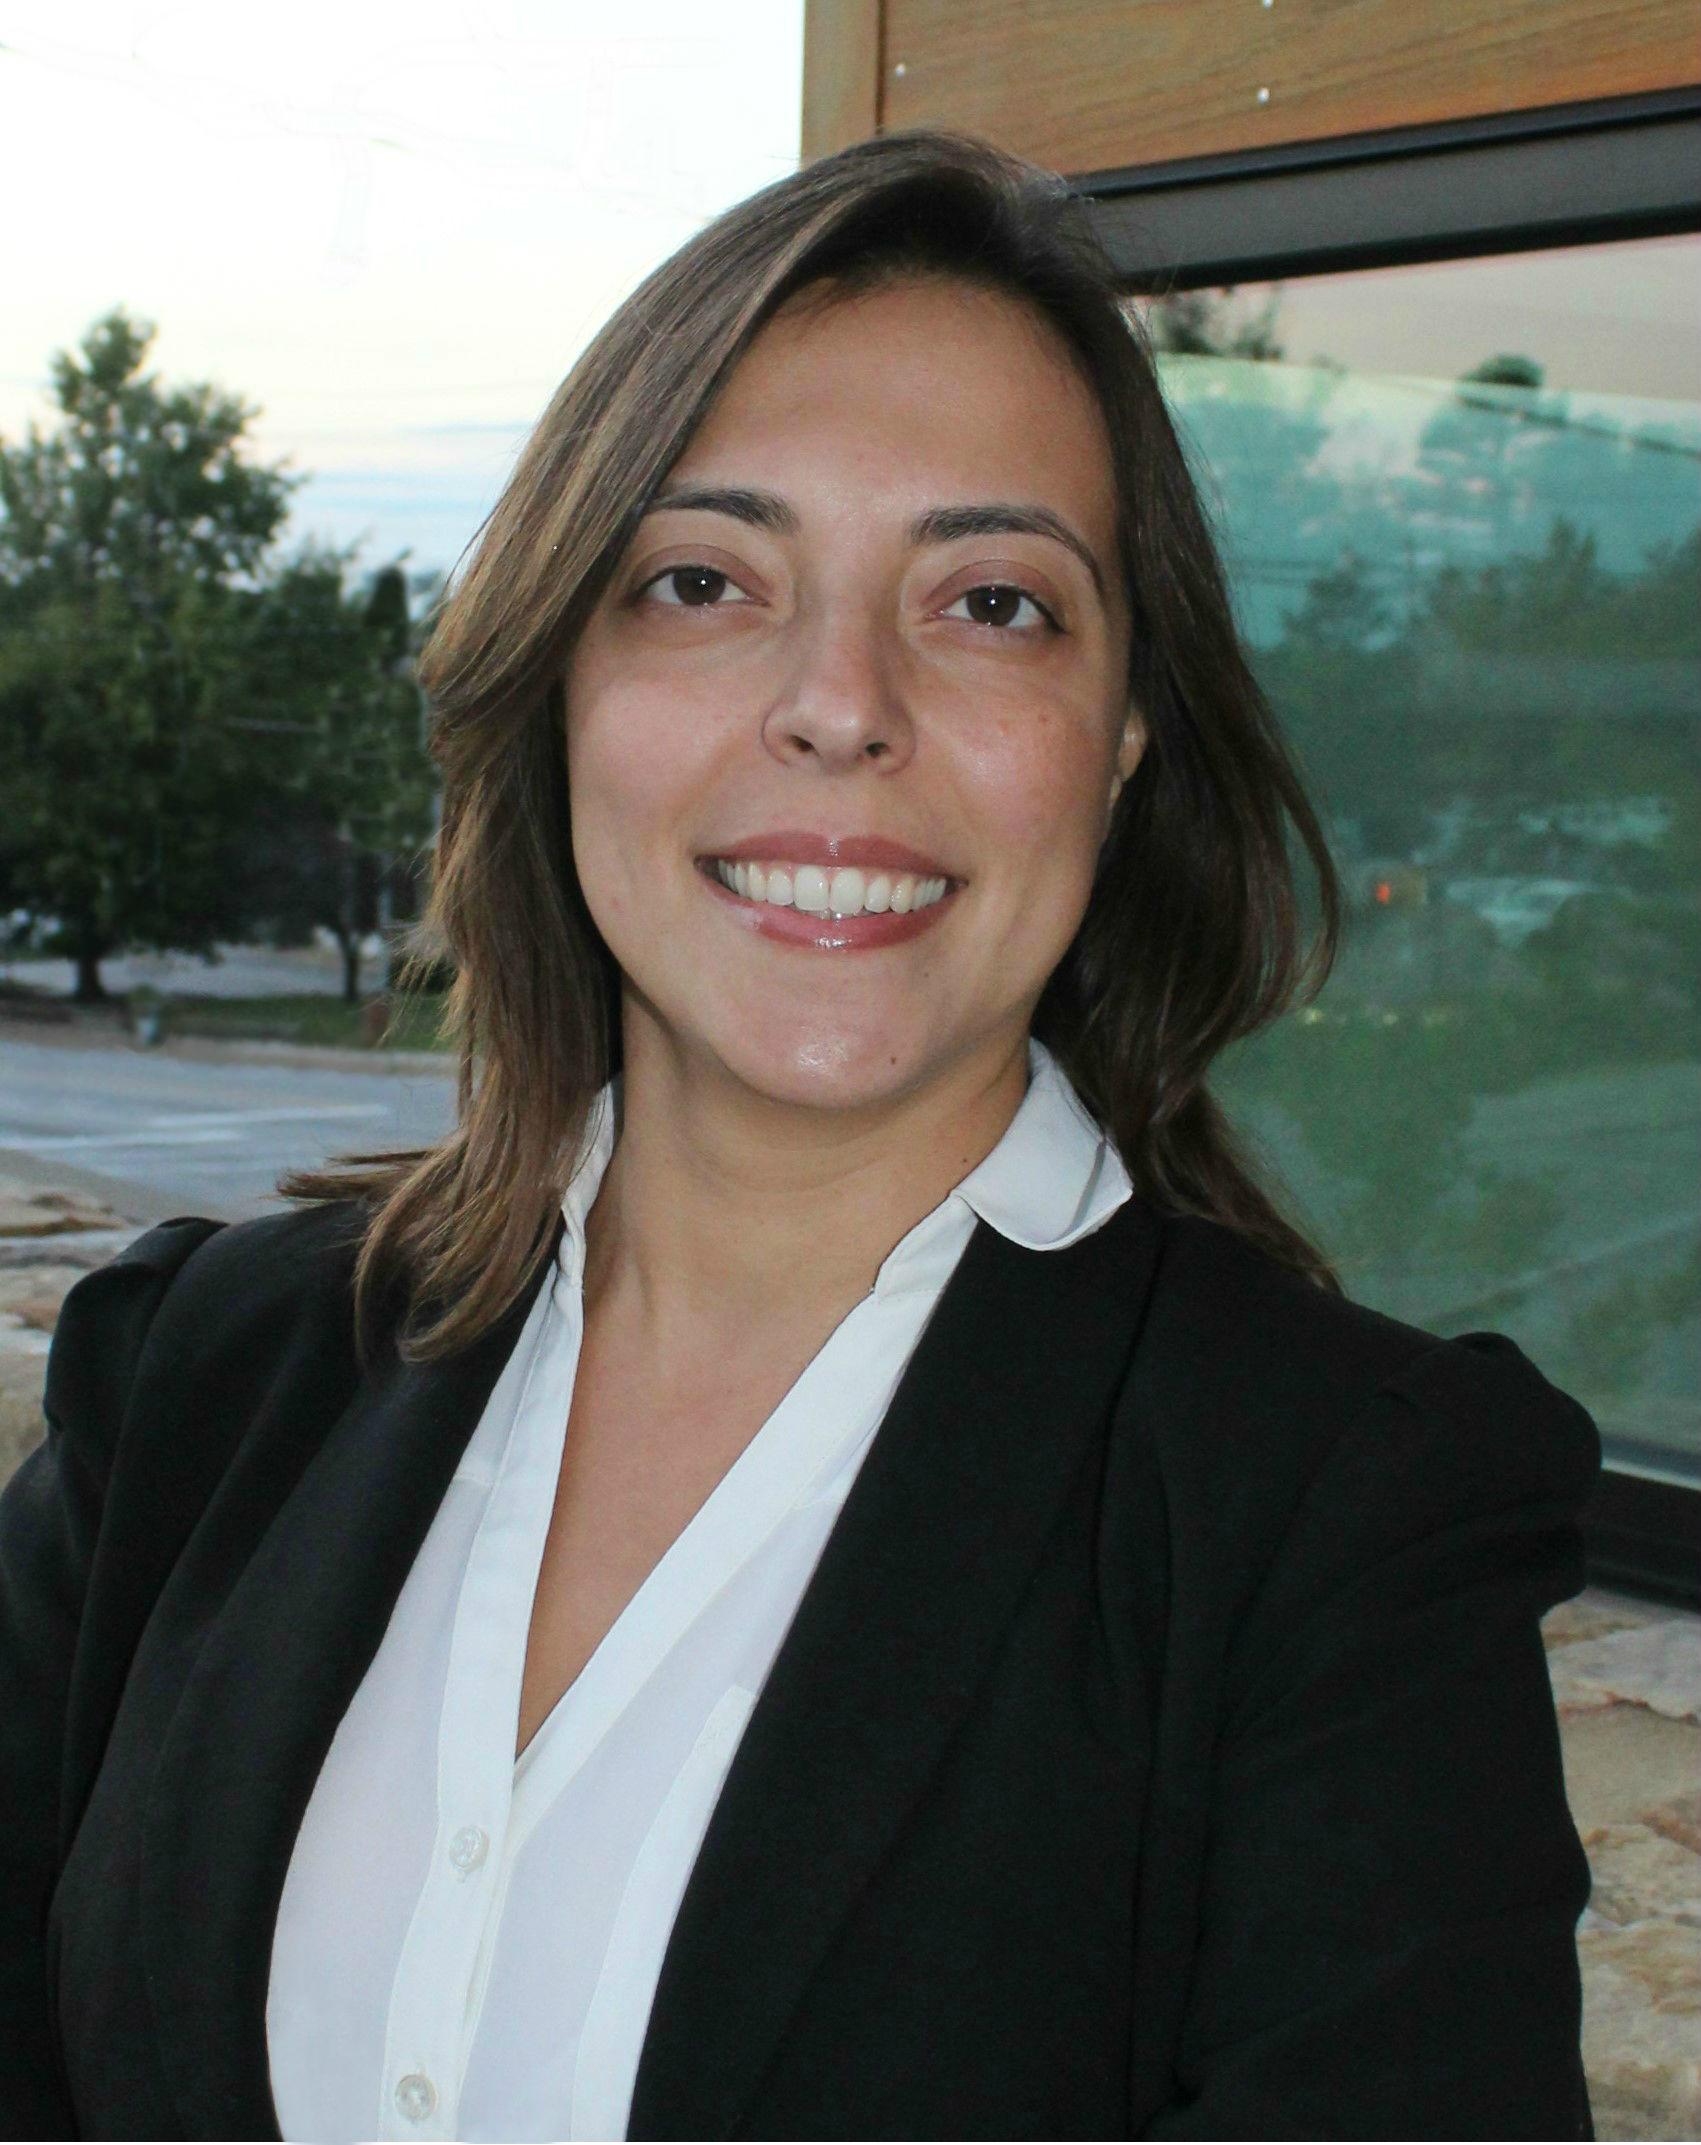 Dr. Cristiane Damasceno